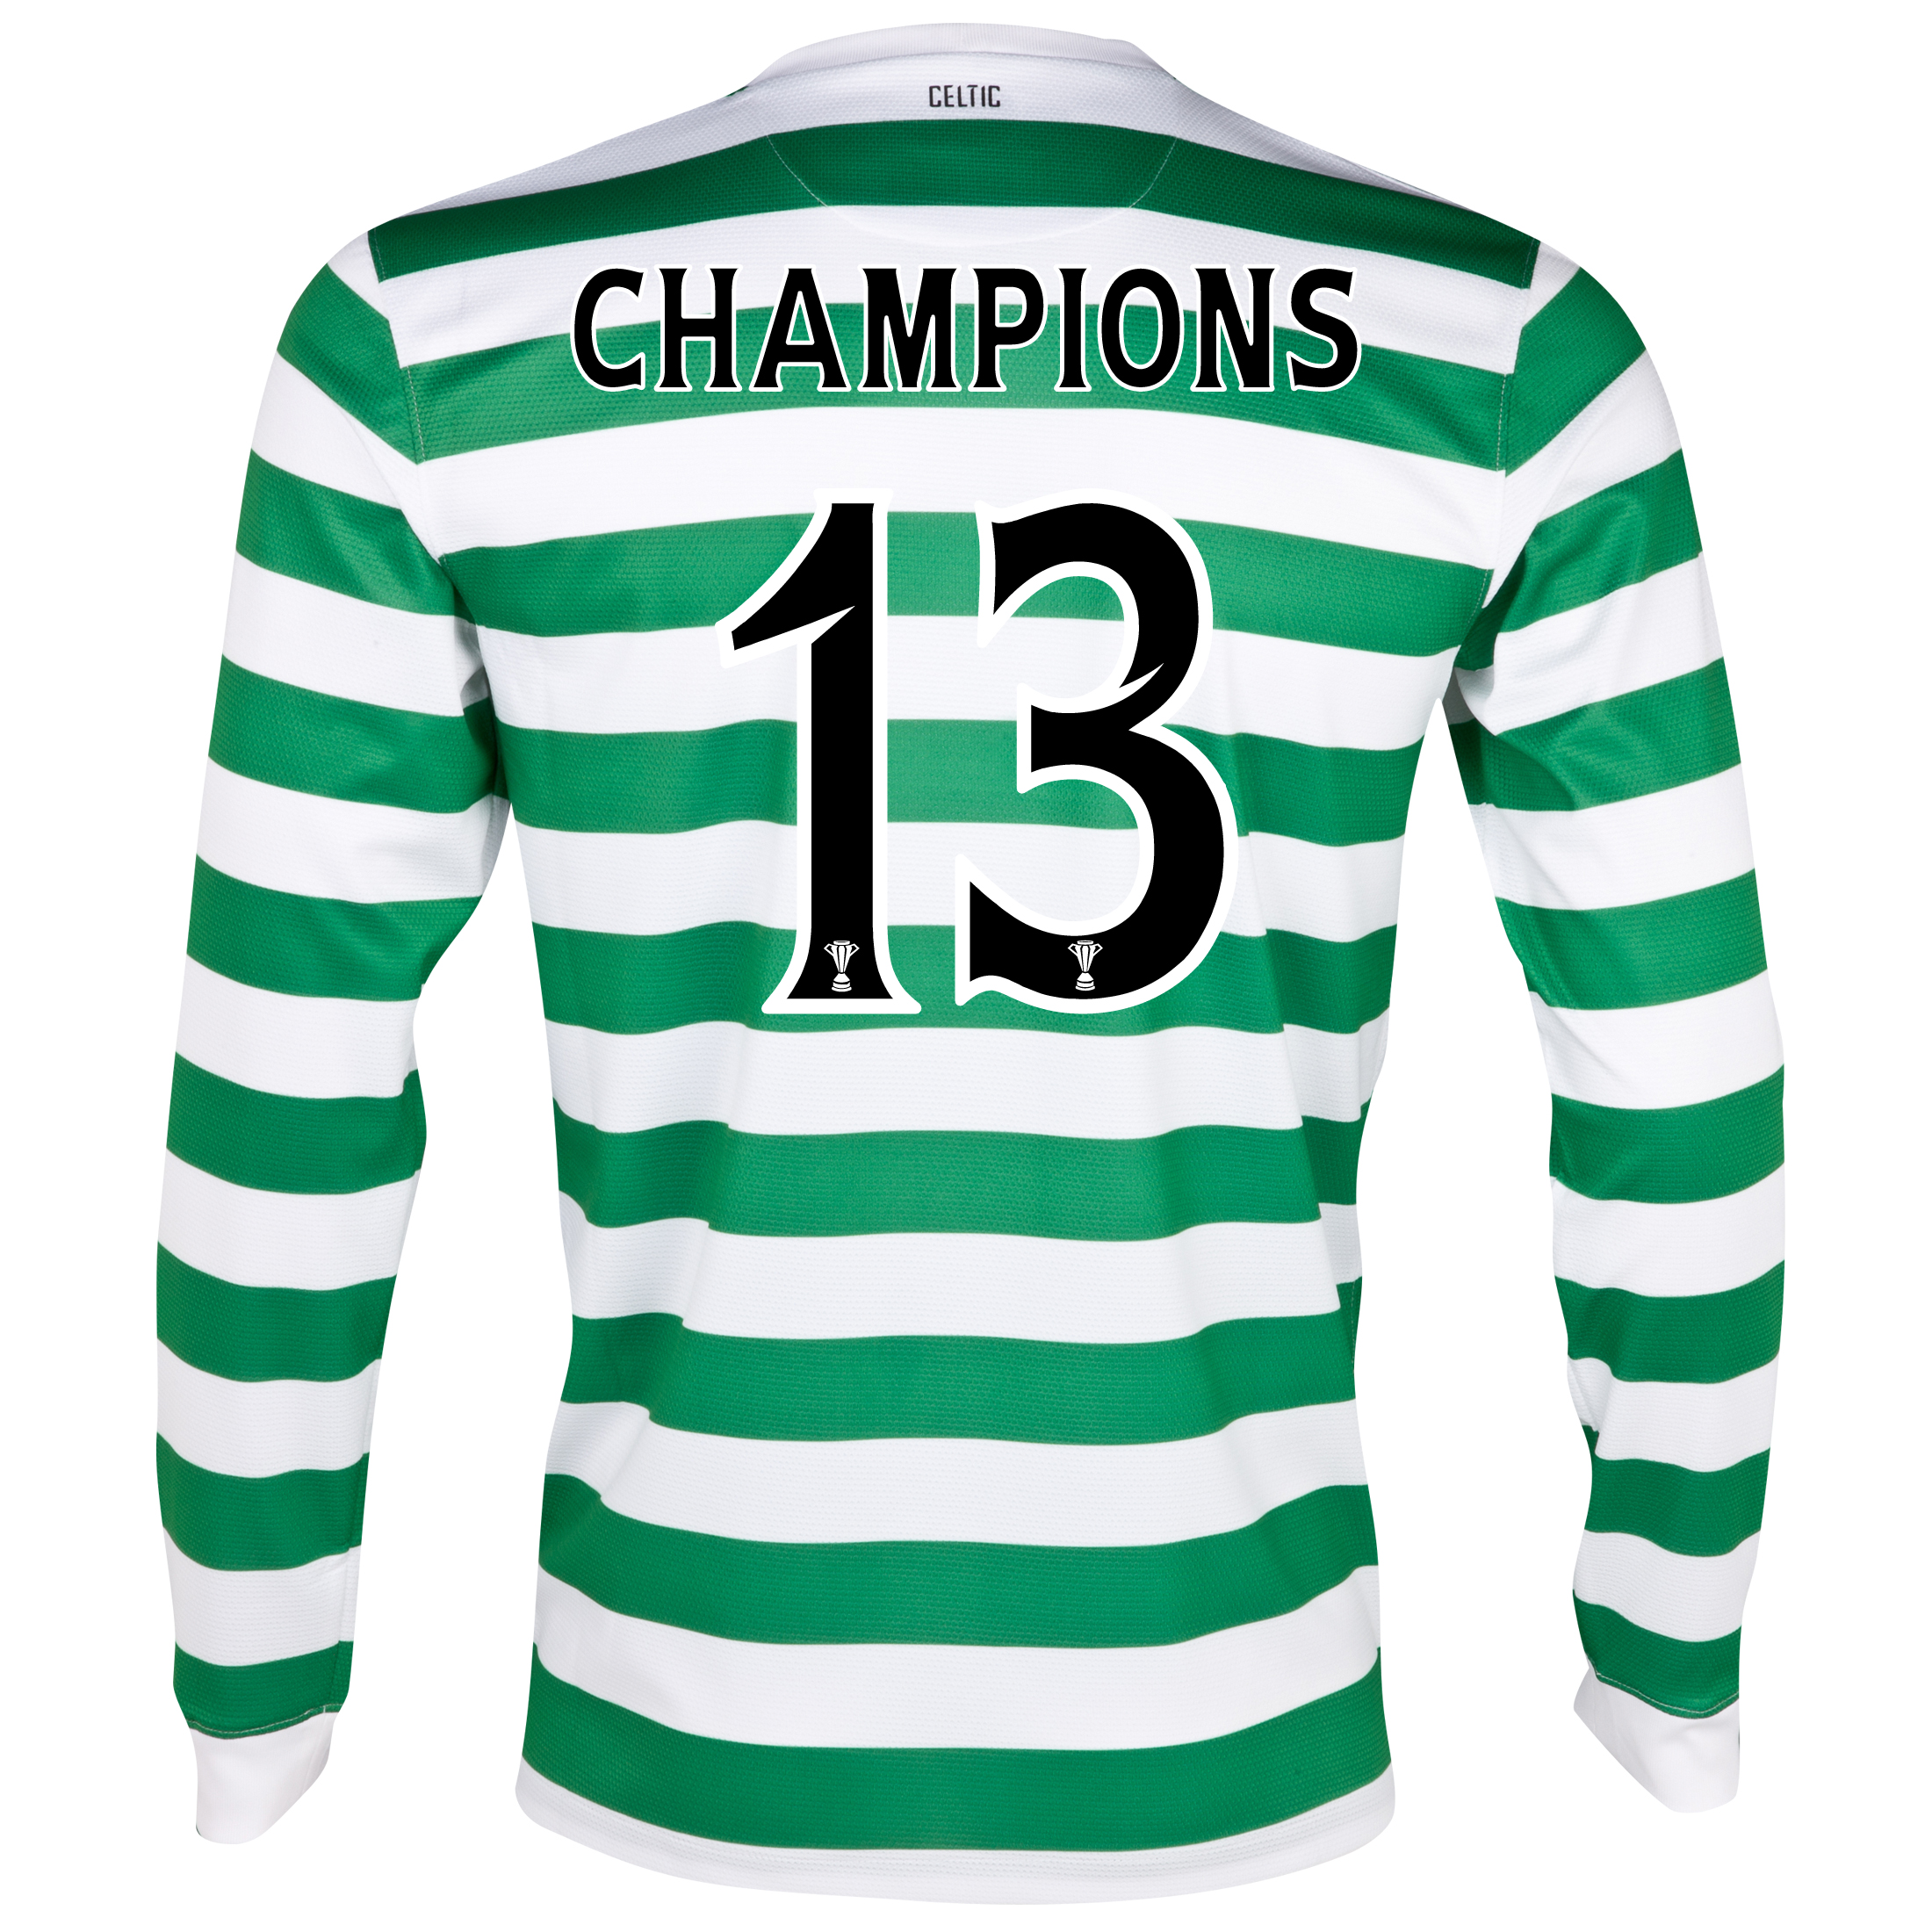 Celtic Home Shirt 2012/13 - Long Sleeved - Kids with Champions 13 printing